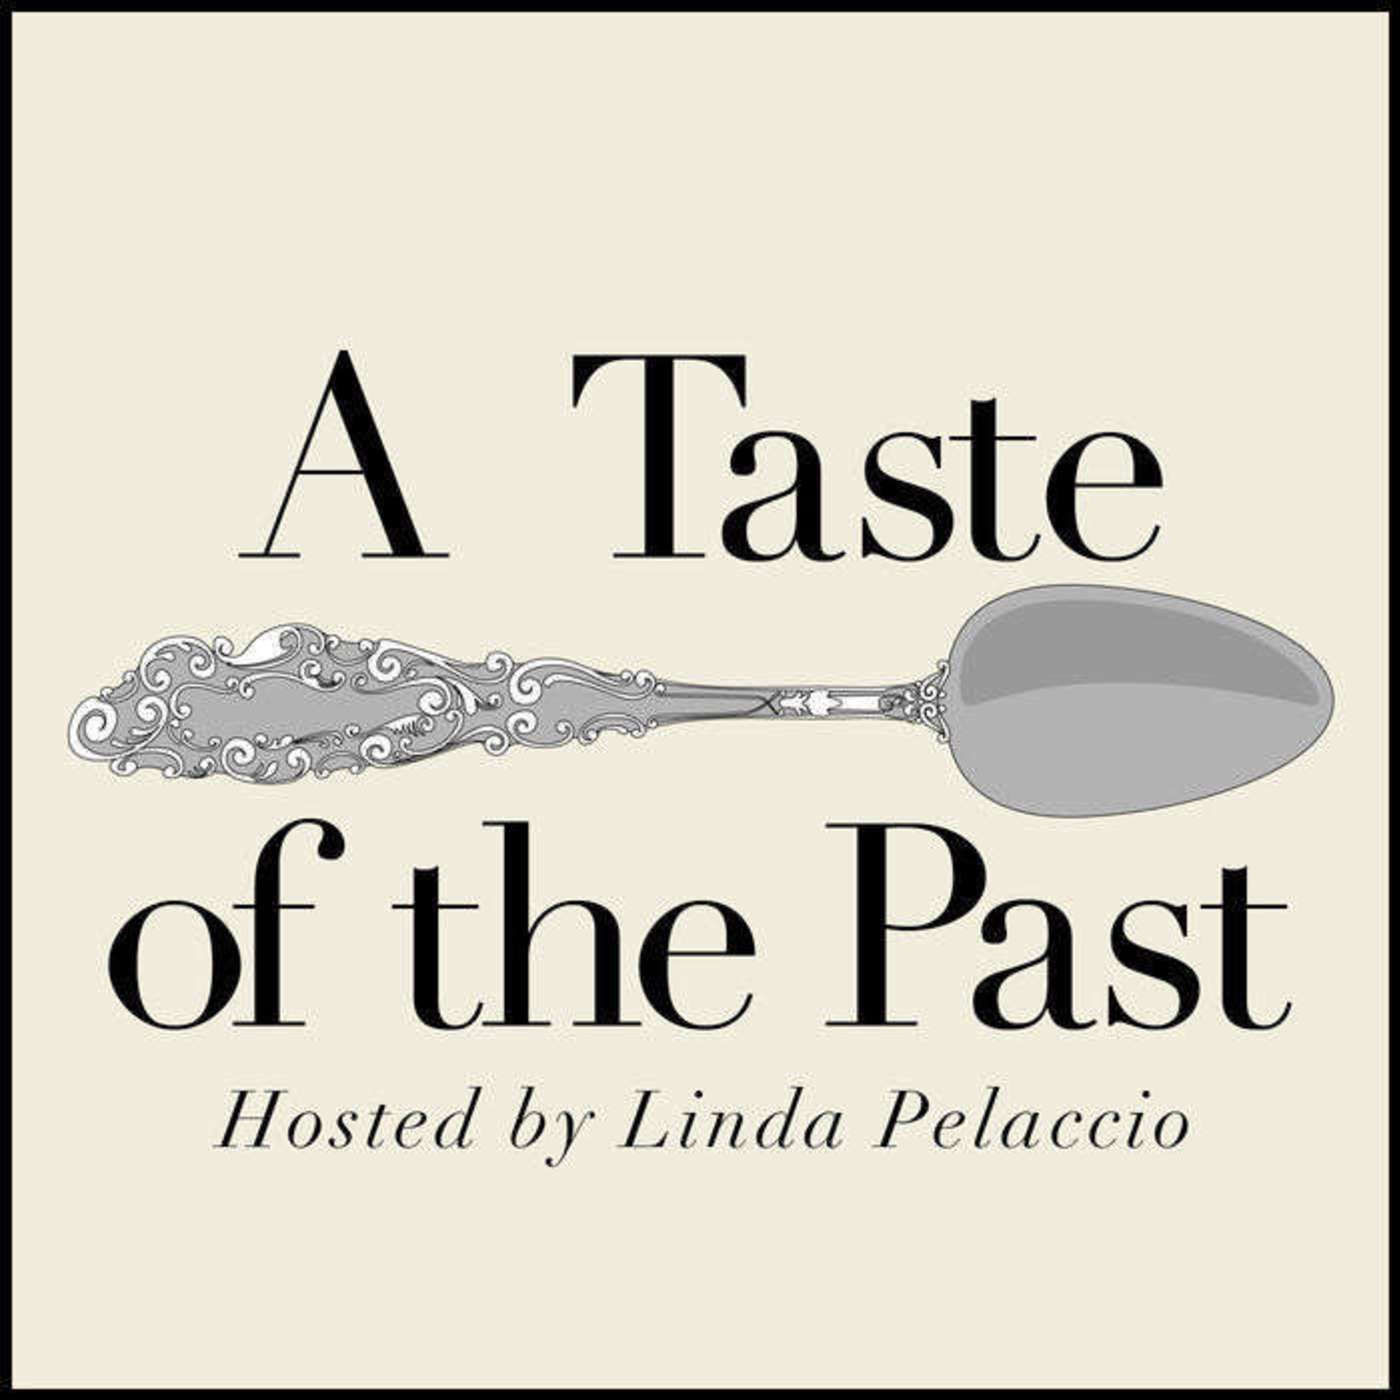 Episode 84: The Lost Art of Real Cooking